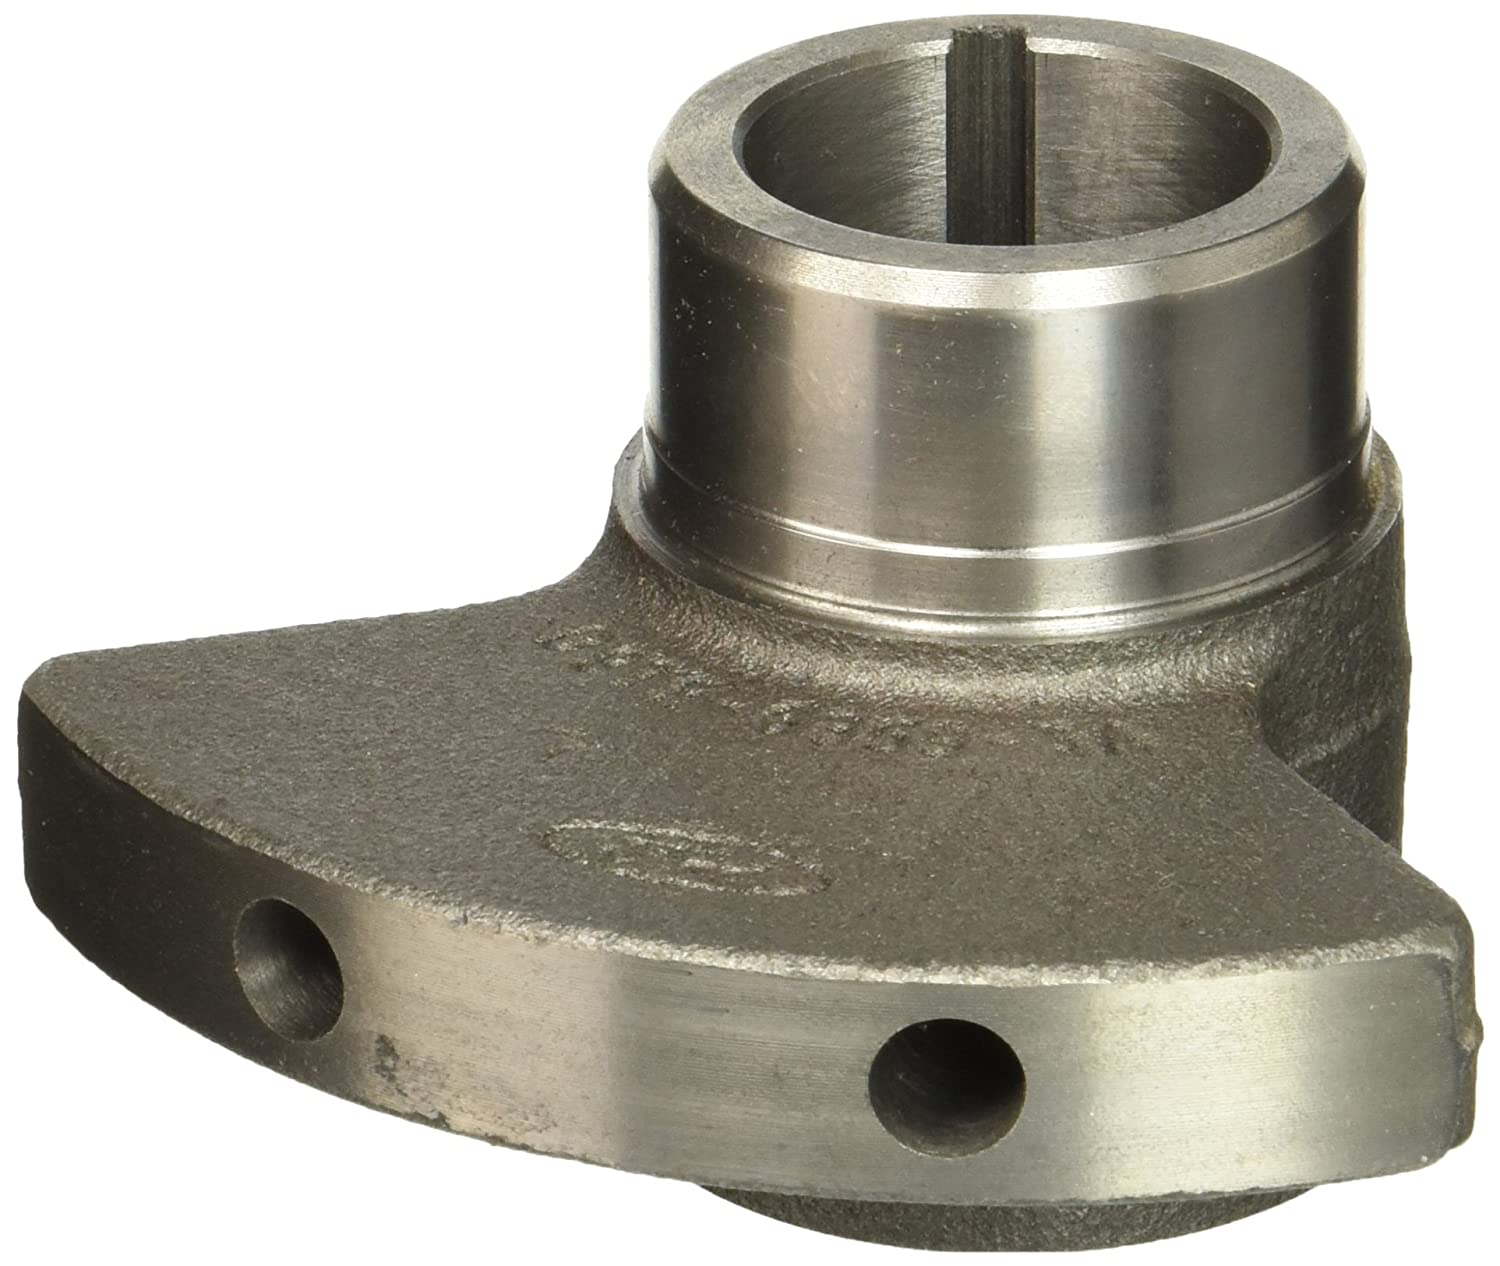 Ford Racing M-6359-D460 Crankshaft Damper Spacer with Counter Weight